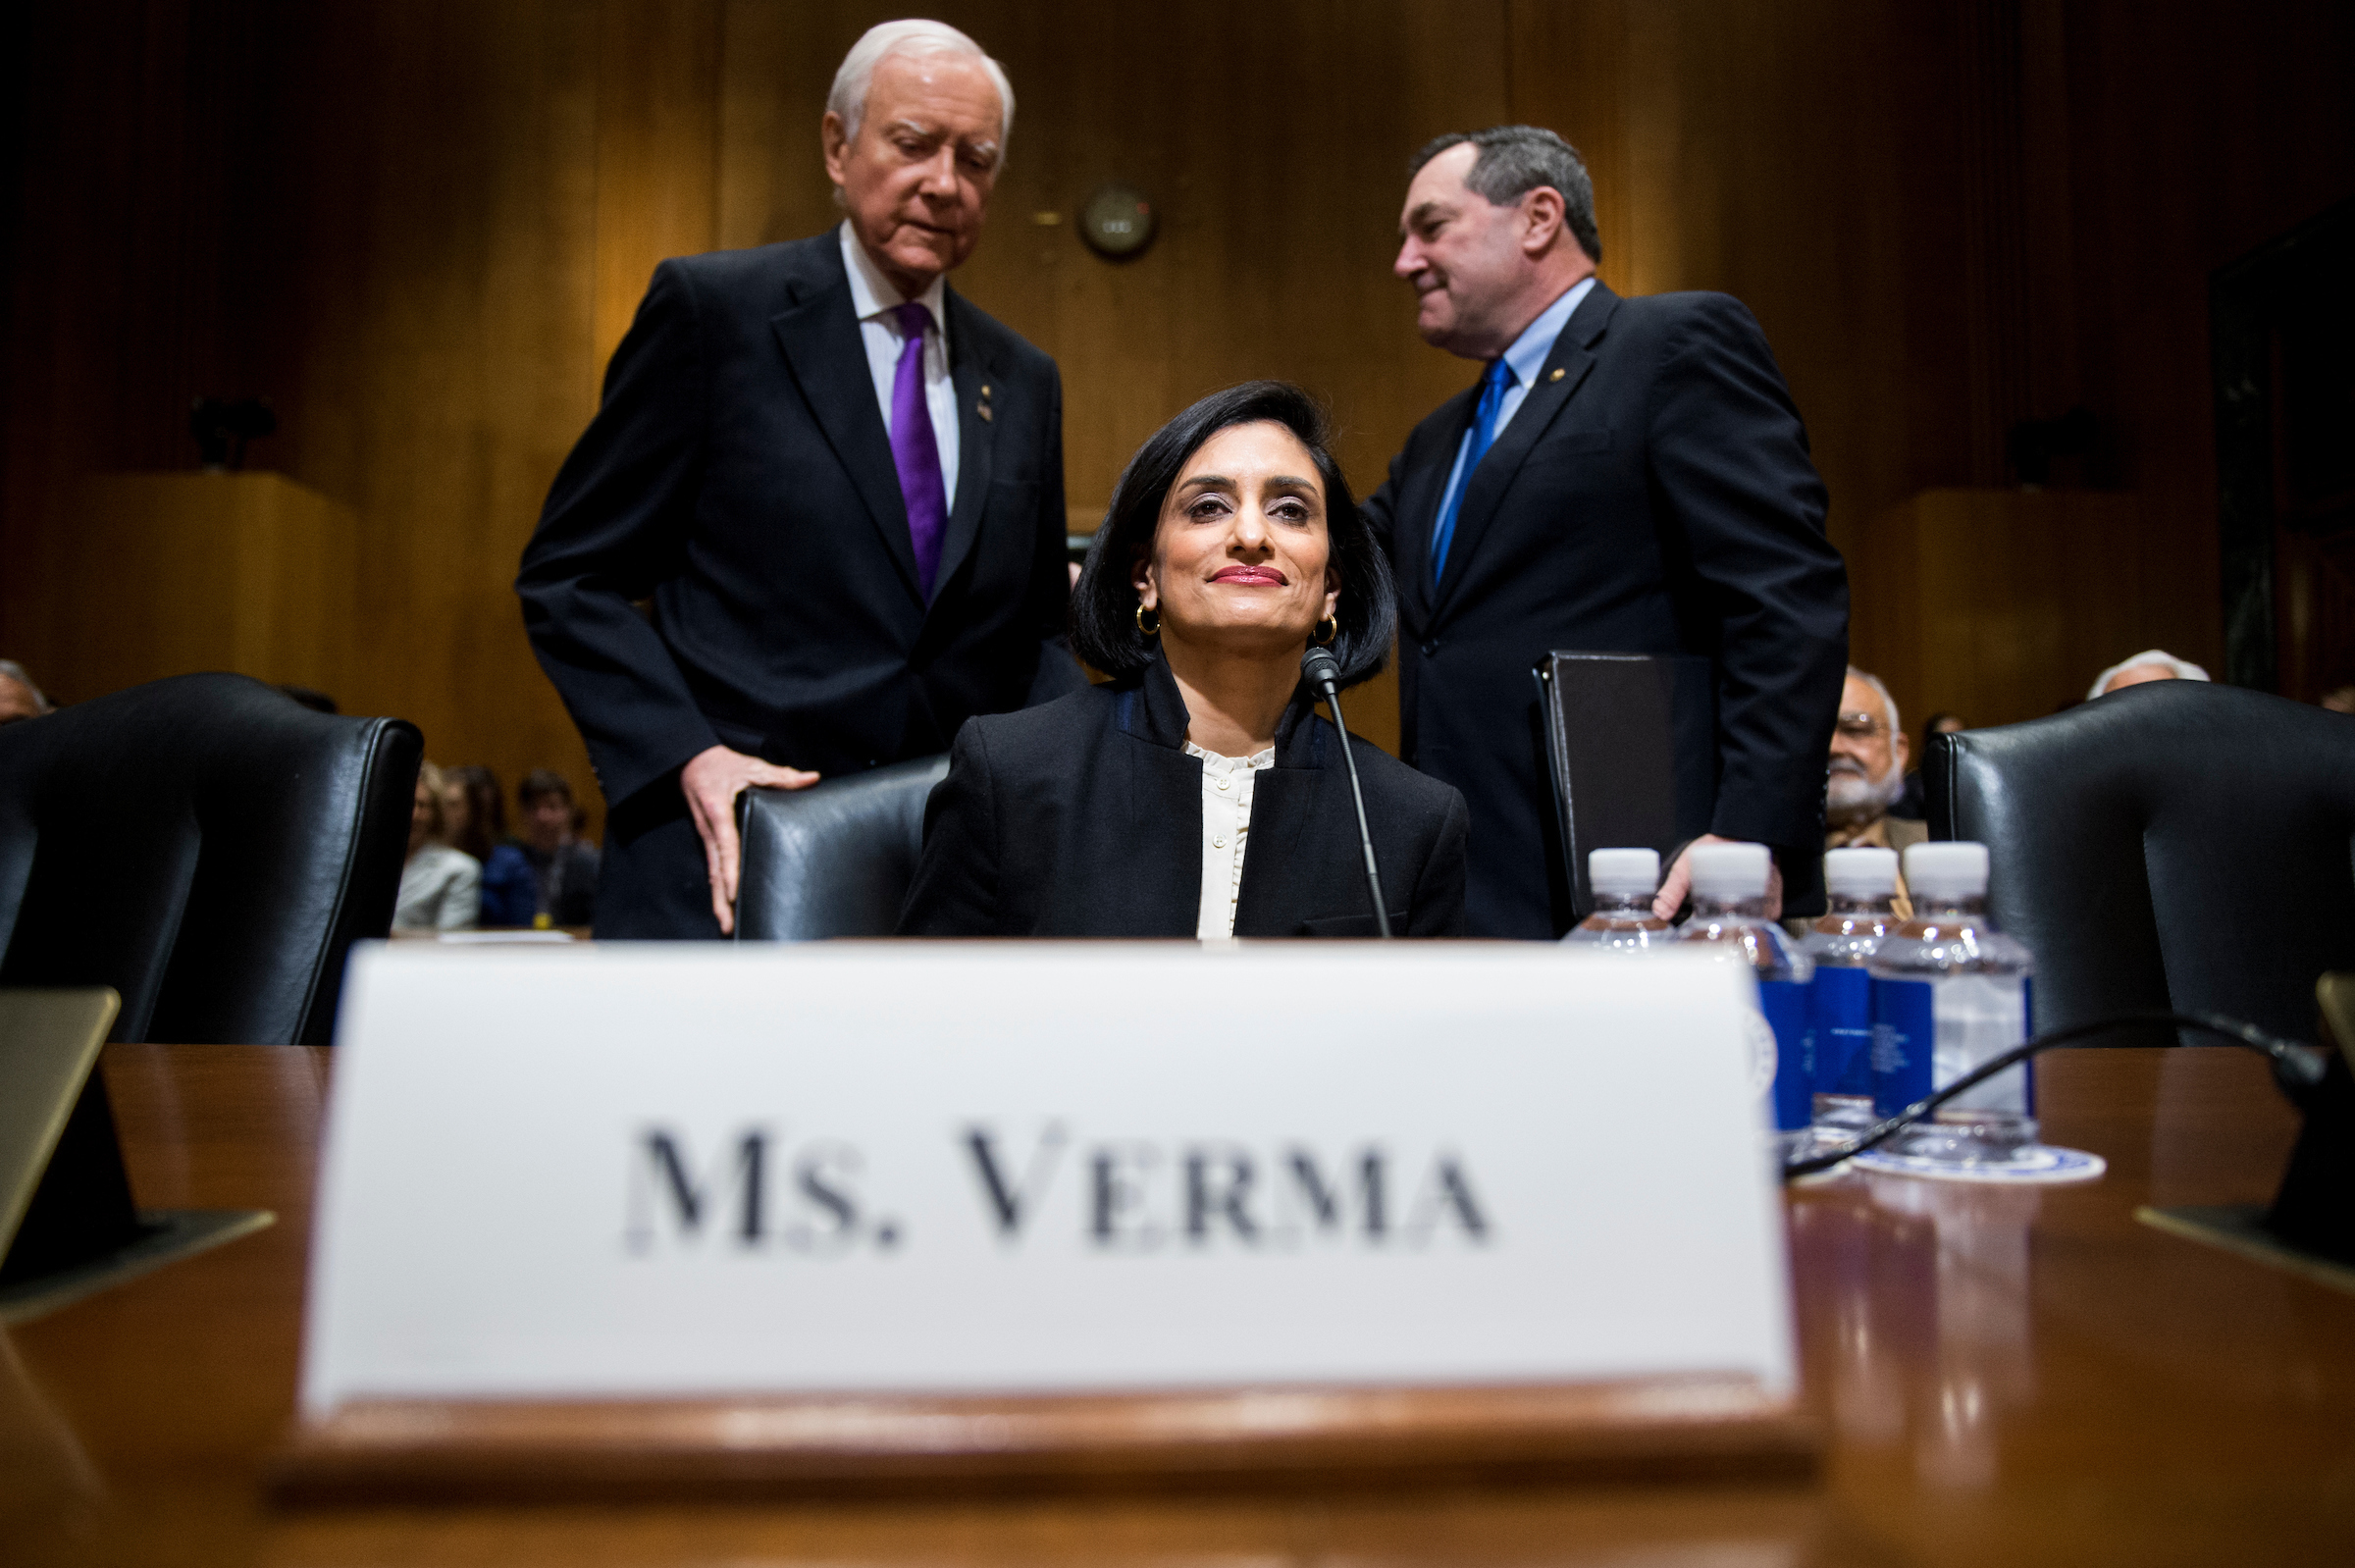 UNITED STATES - FEBRUARY 16: Chairman Sen. Orrin Hatch, R-Utah, left, and Sen. Joe Donnelly, D-Ind., seat Seema Verma, Administrator of the Centers for Medicare and Medicaid Services nominee, for her her confirmation hearing in the Senate Finance Committee on Thursday, Feb. 16, 2017. (Photo By Bill Clark/CQ Roll Call)